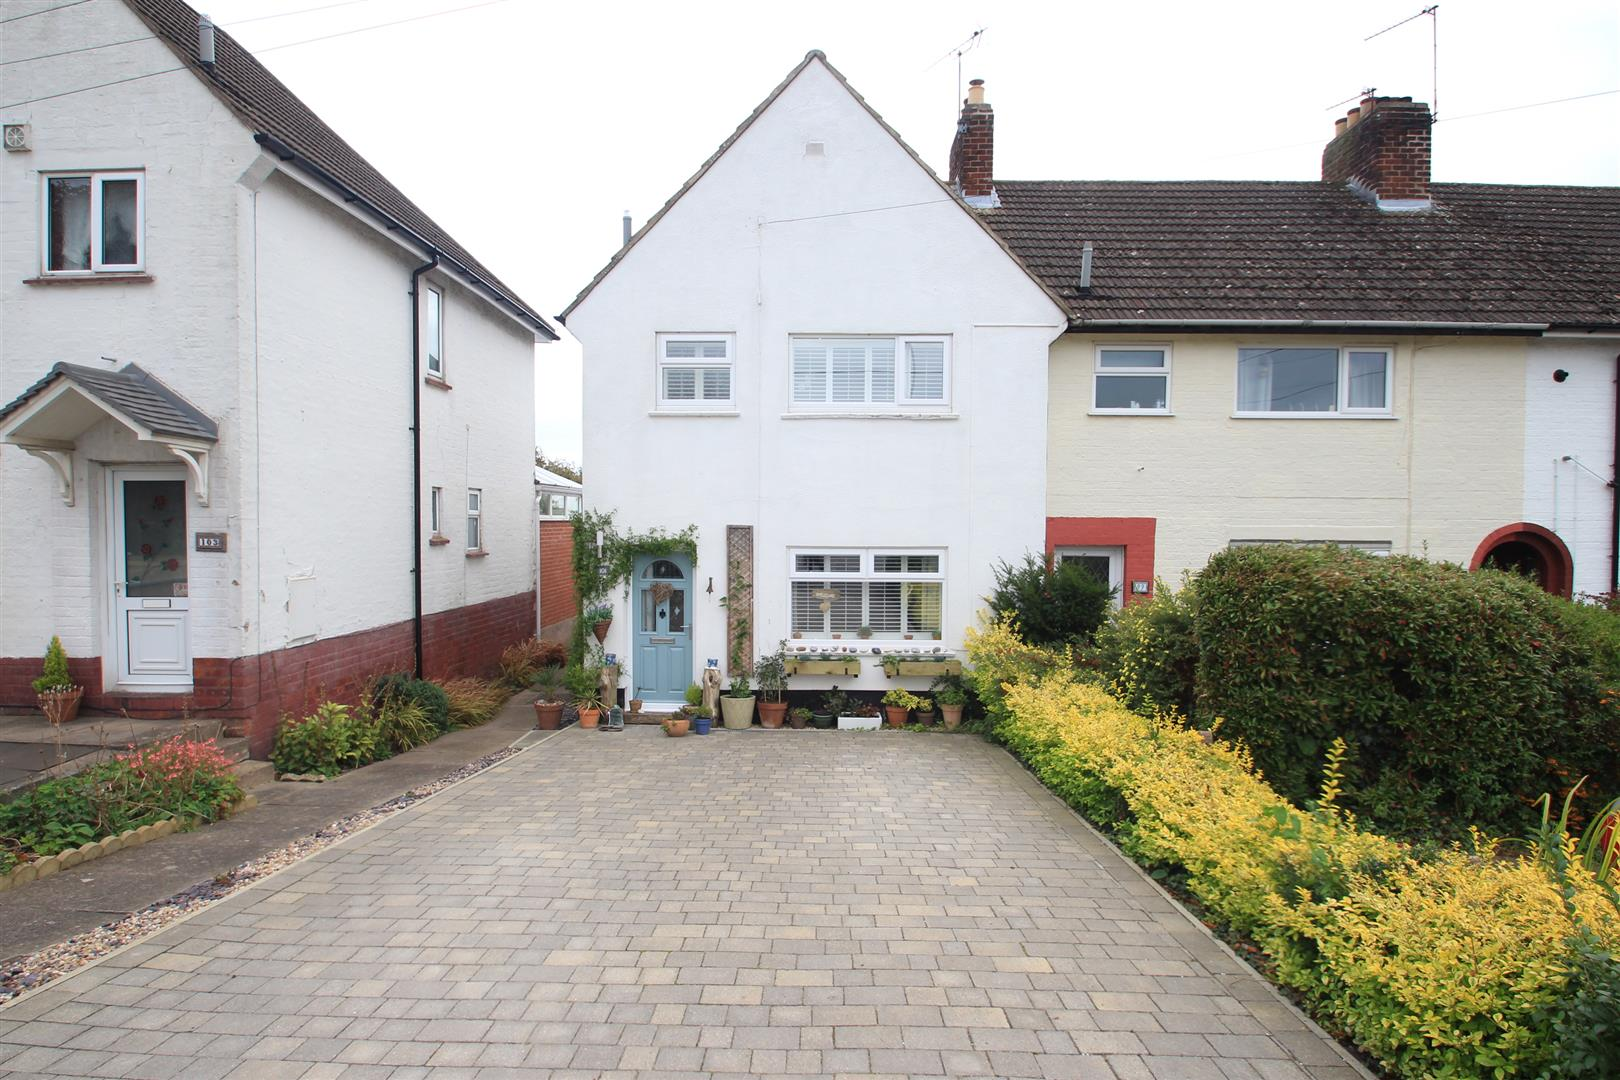 3 Bedrooms End Of Terrace House for sale in Mountsorrel Lane, Rothley, Leicester